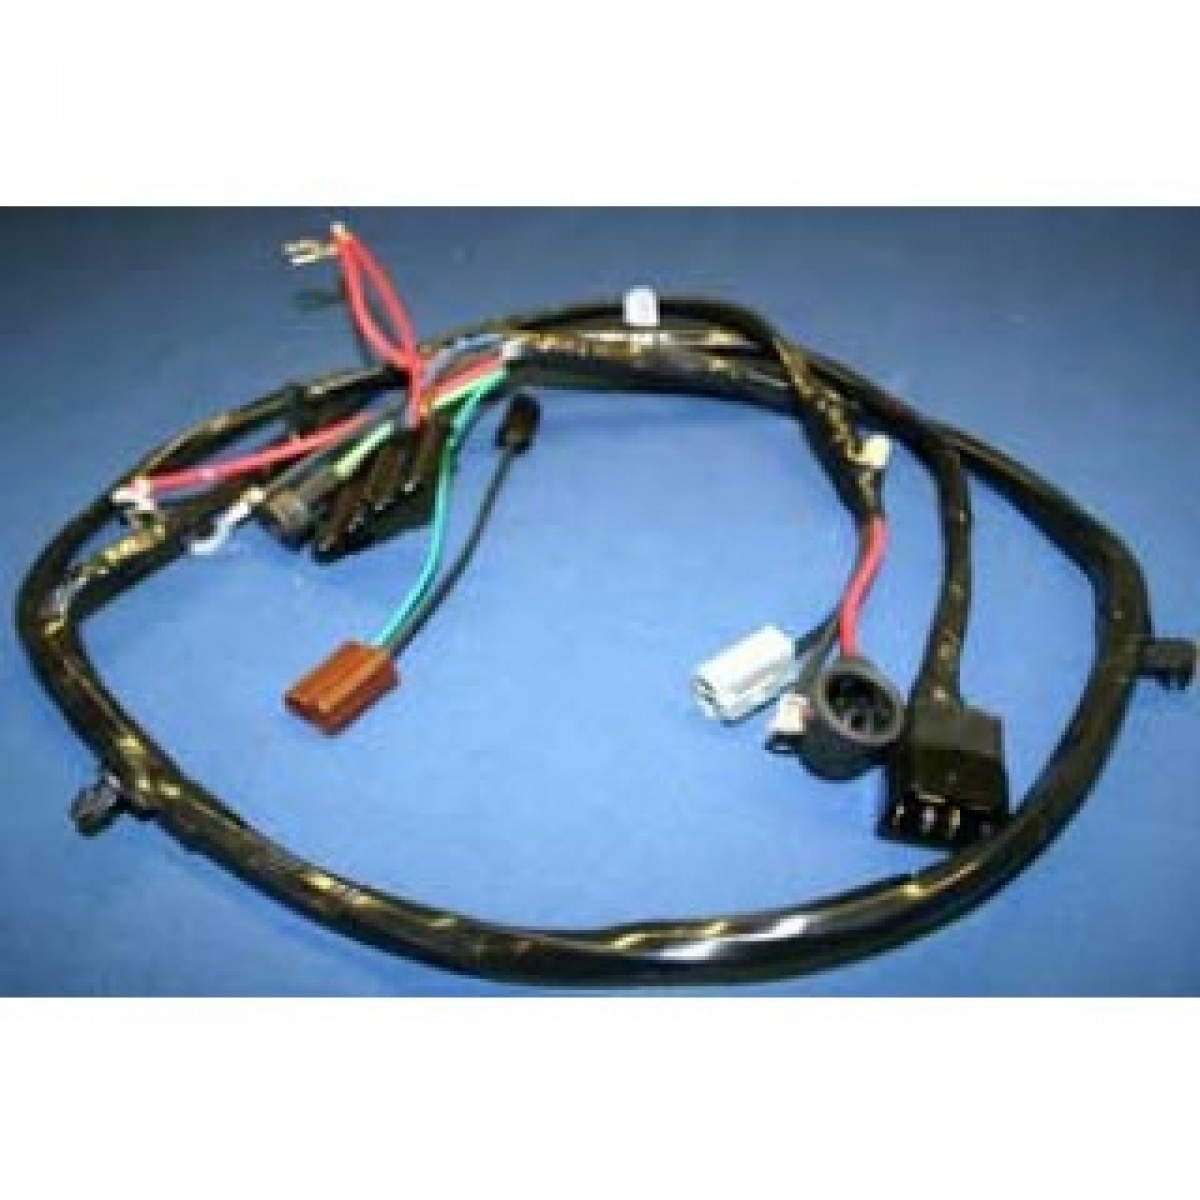 1963-1966 chevy c10 front light harness 1966 chevy c10 wiring harness 1985 chevy c10 wiring harness